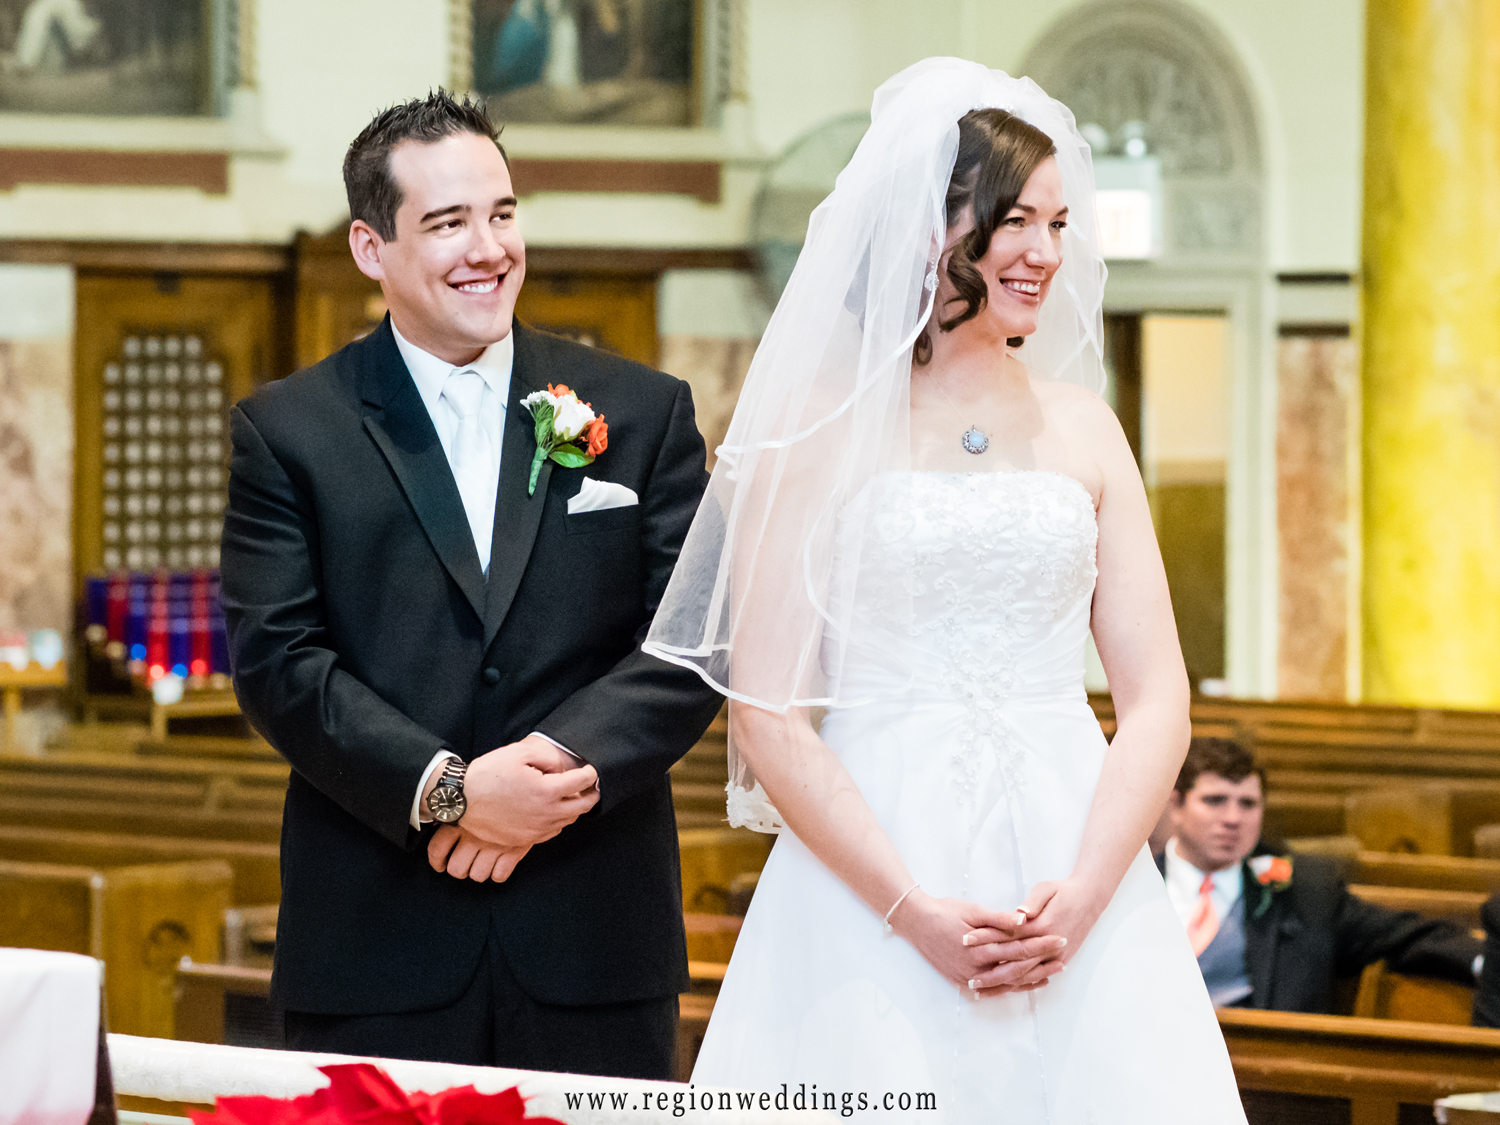 The couple reacts with smiles as their priest performs their Catholic wedding ceremony.